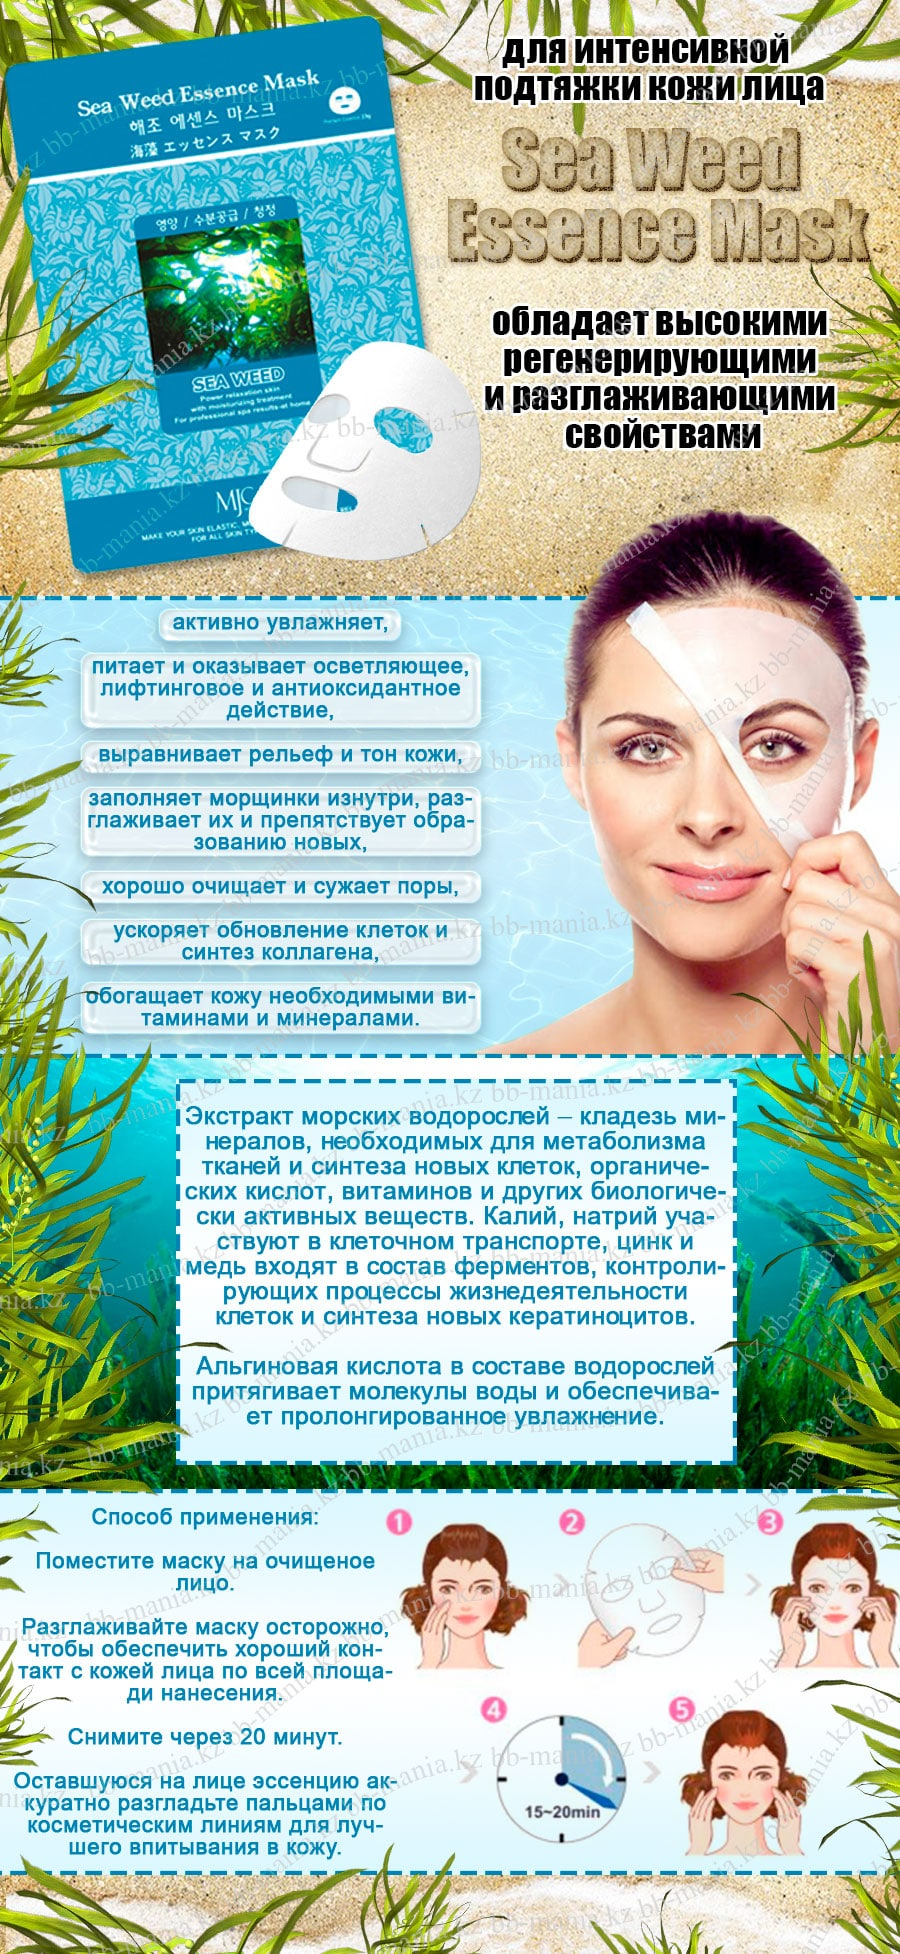 Mijin-Sea-Weed-Essence-Mask-min